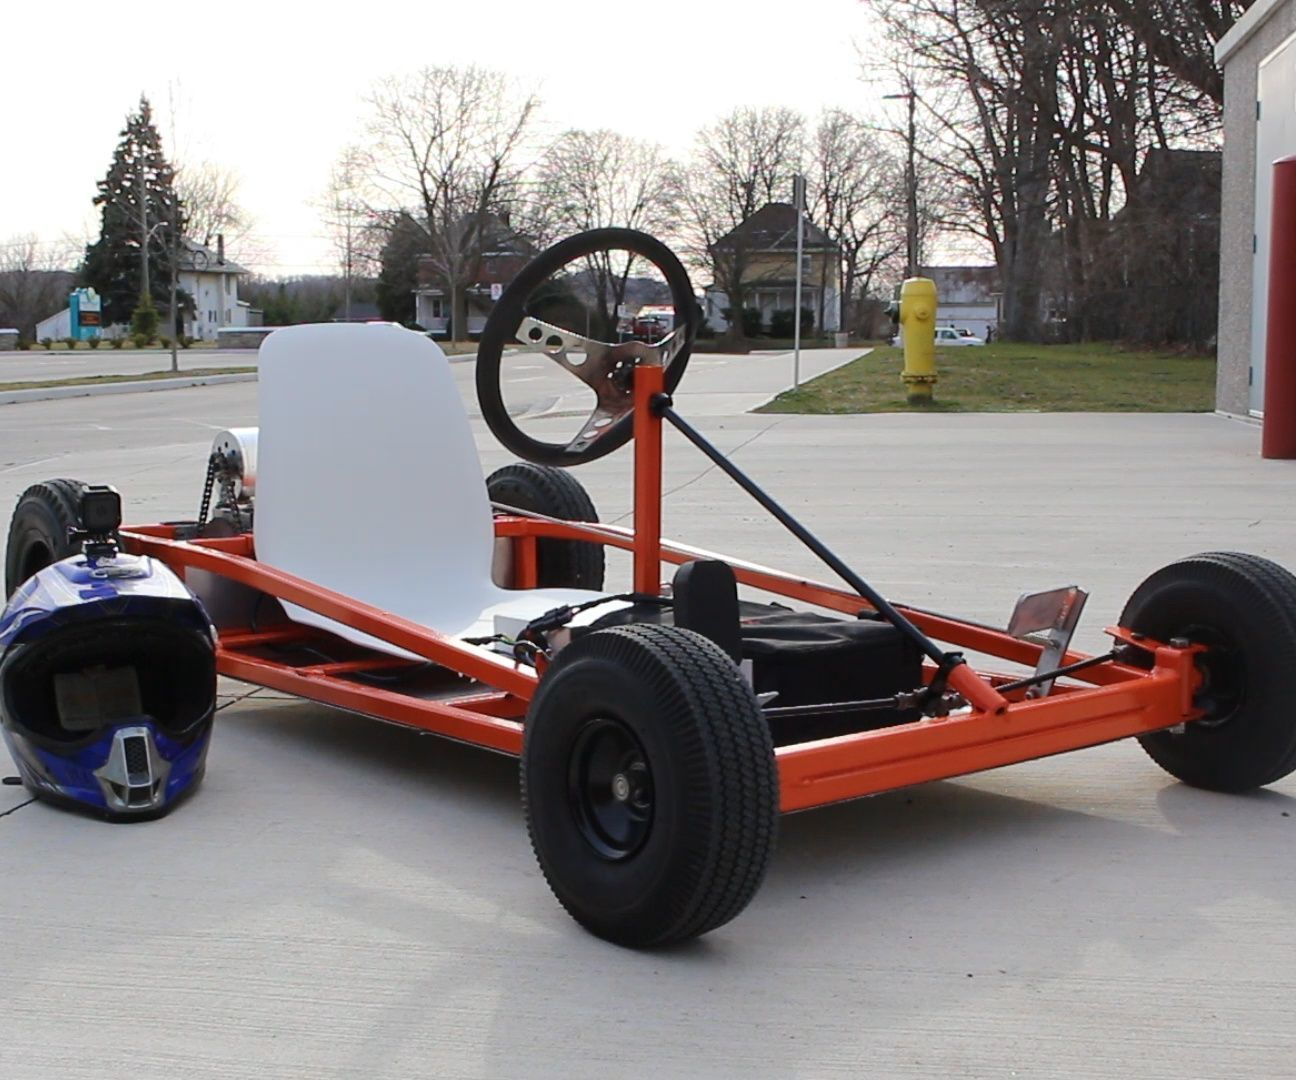 How to Make an Electric Go Kart   Cars, Electric vehicle and Car vehicle